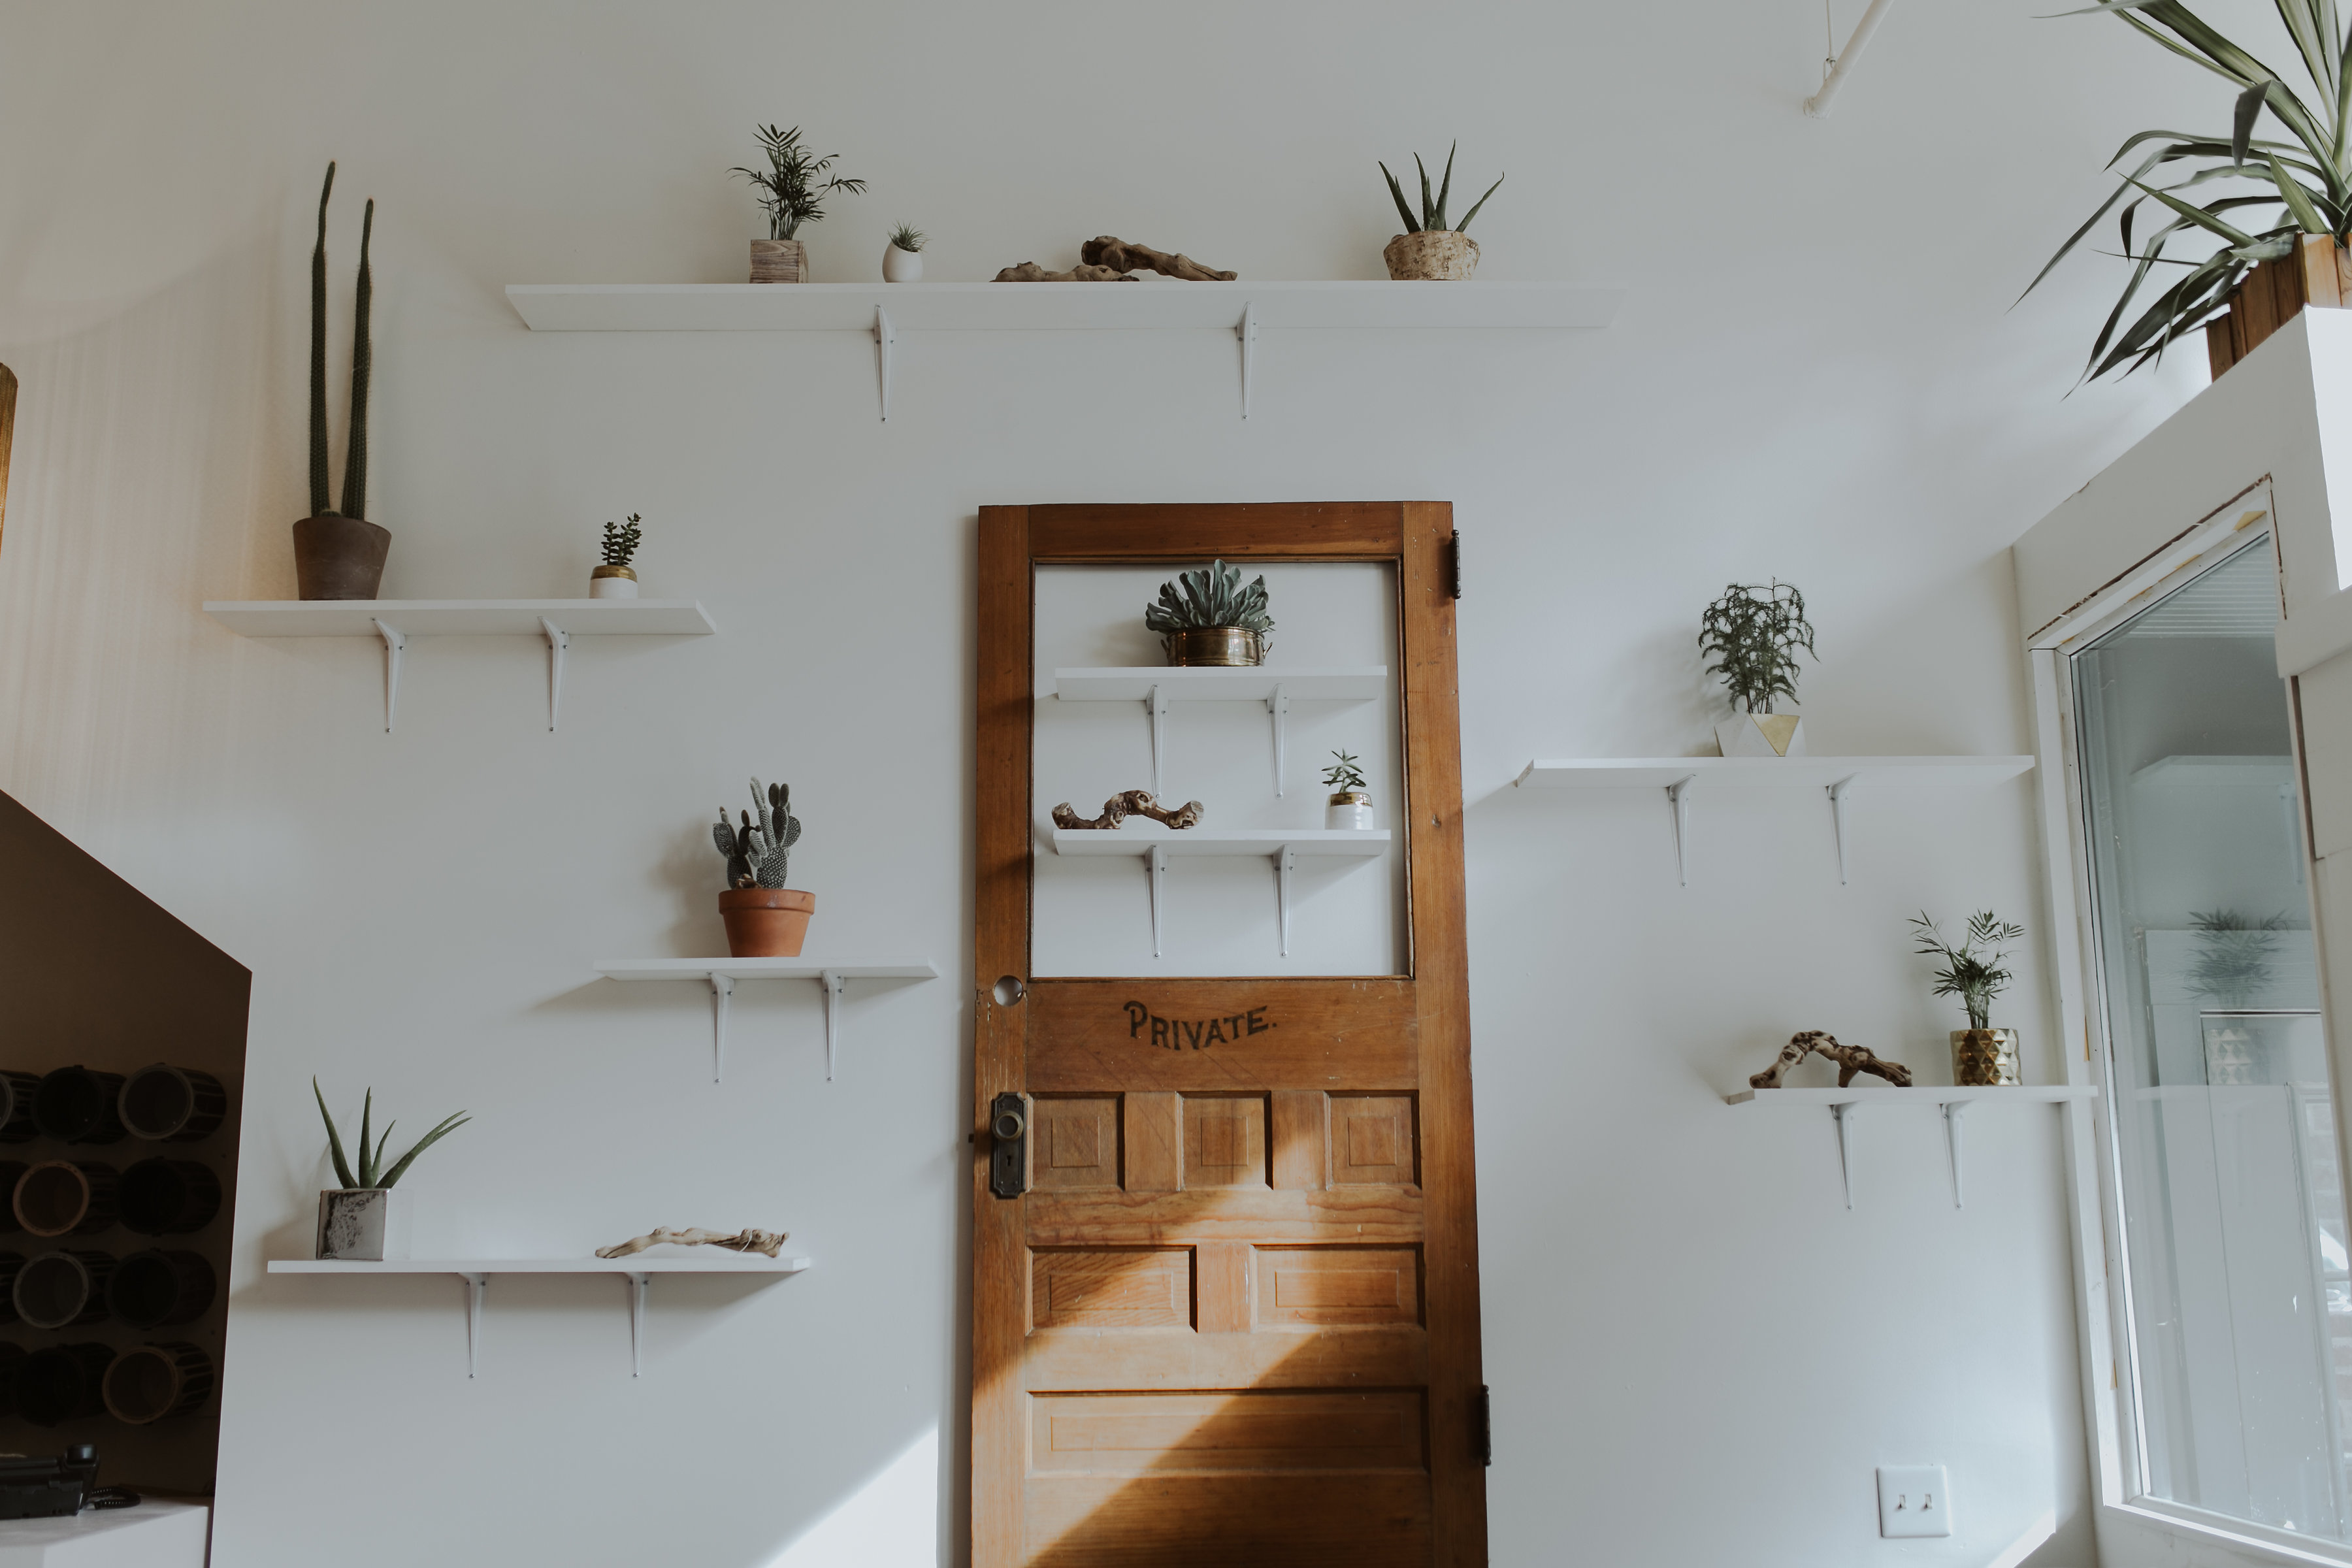 Wooden door decor hanging on wall surrounded by succulents